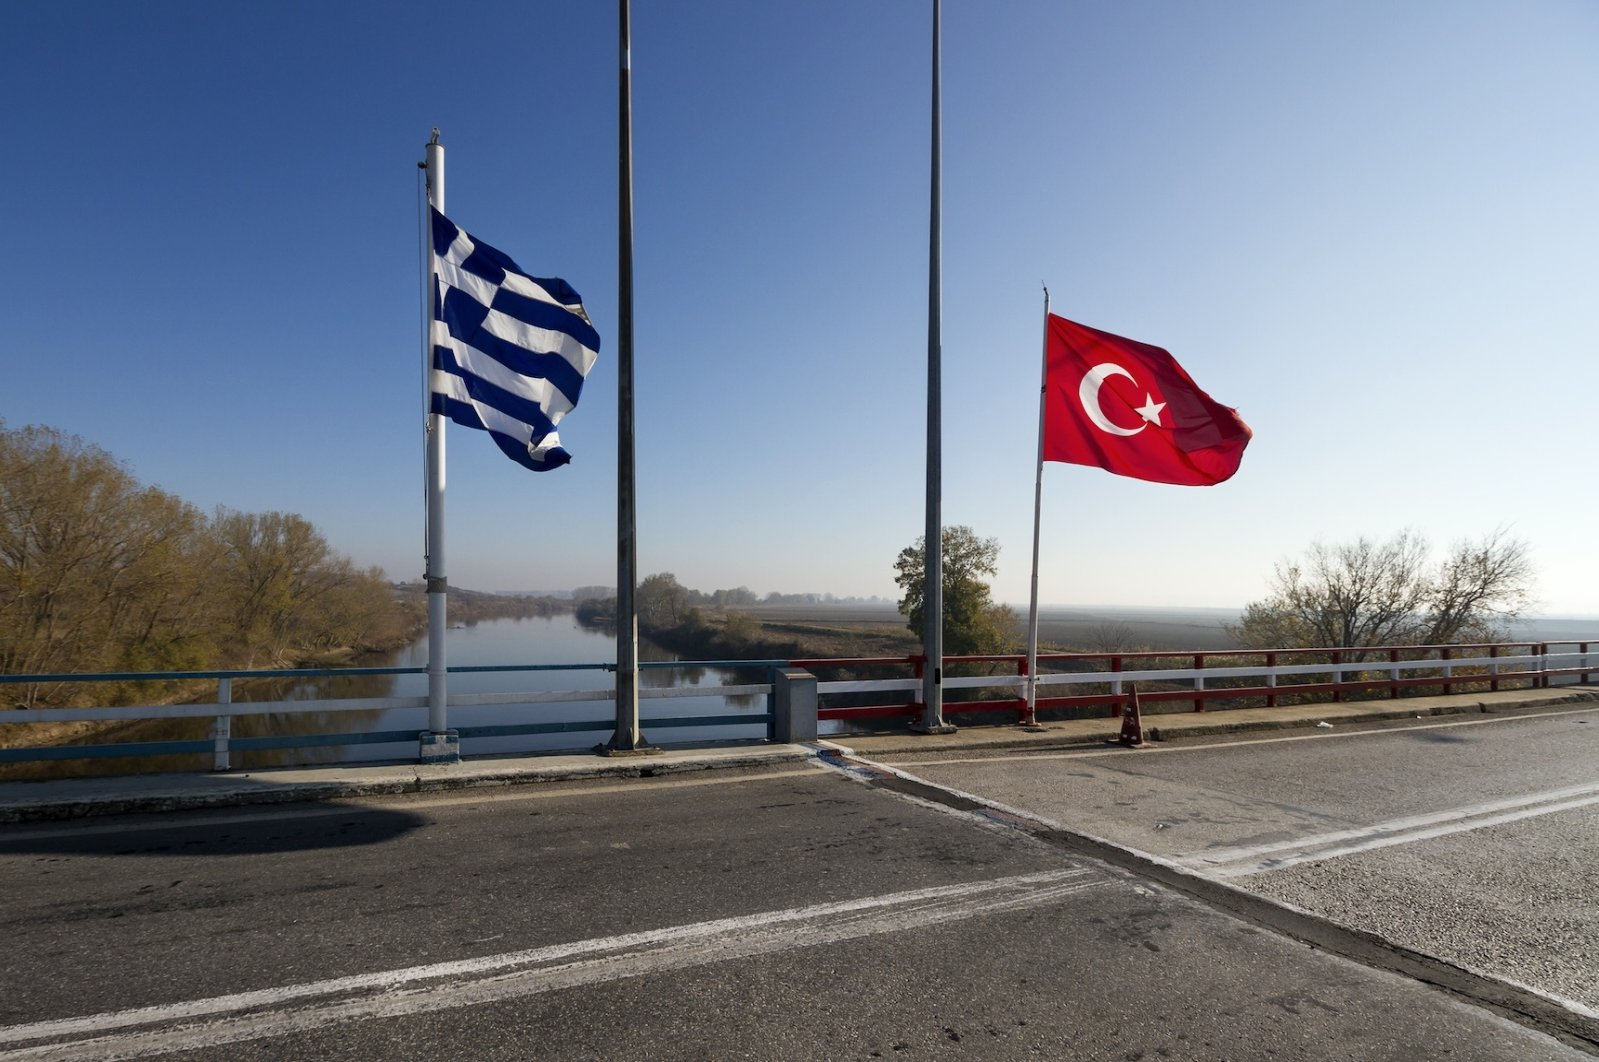 The Greek-Turkish border line right on the bridge over the Meriç river (Evros river in Greek), in Thrace region. The grey line on the road marks the exact point where the two countries meet. (Photo: yiannisscheidt / Shutterstock)